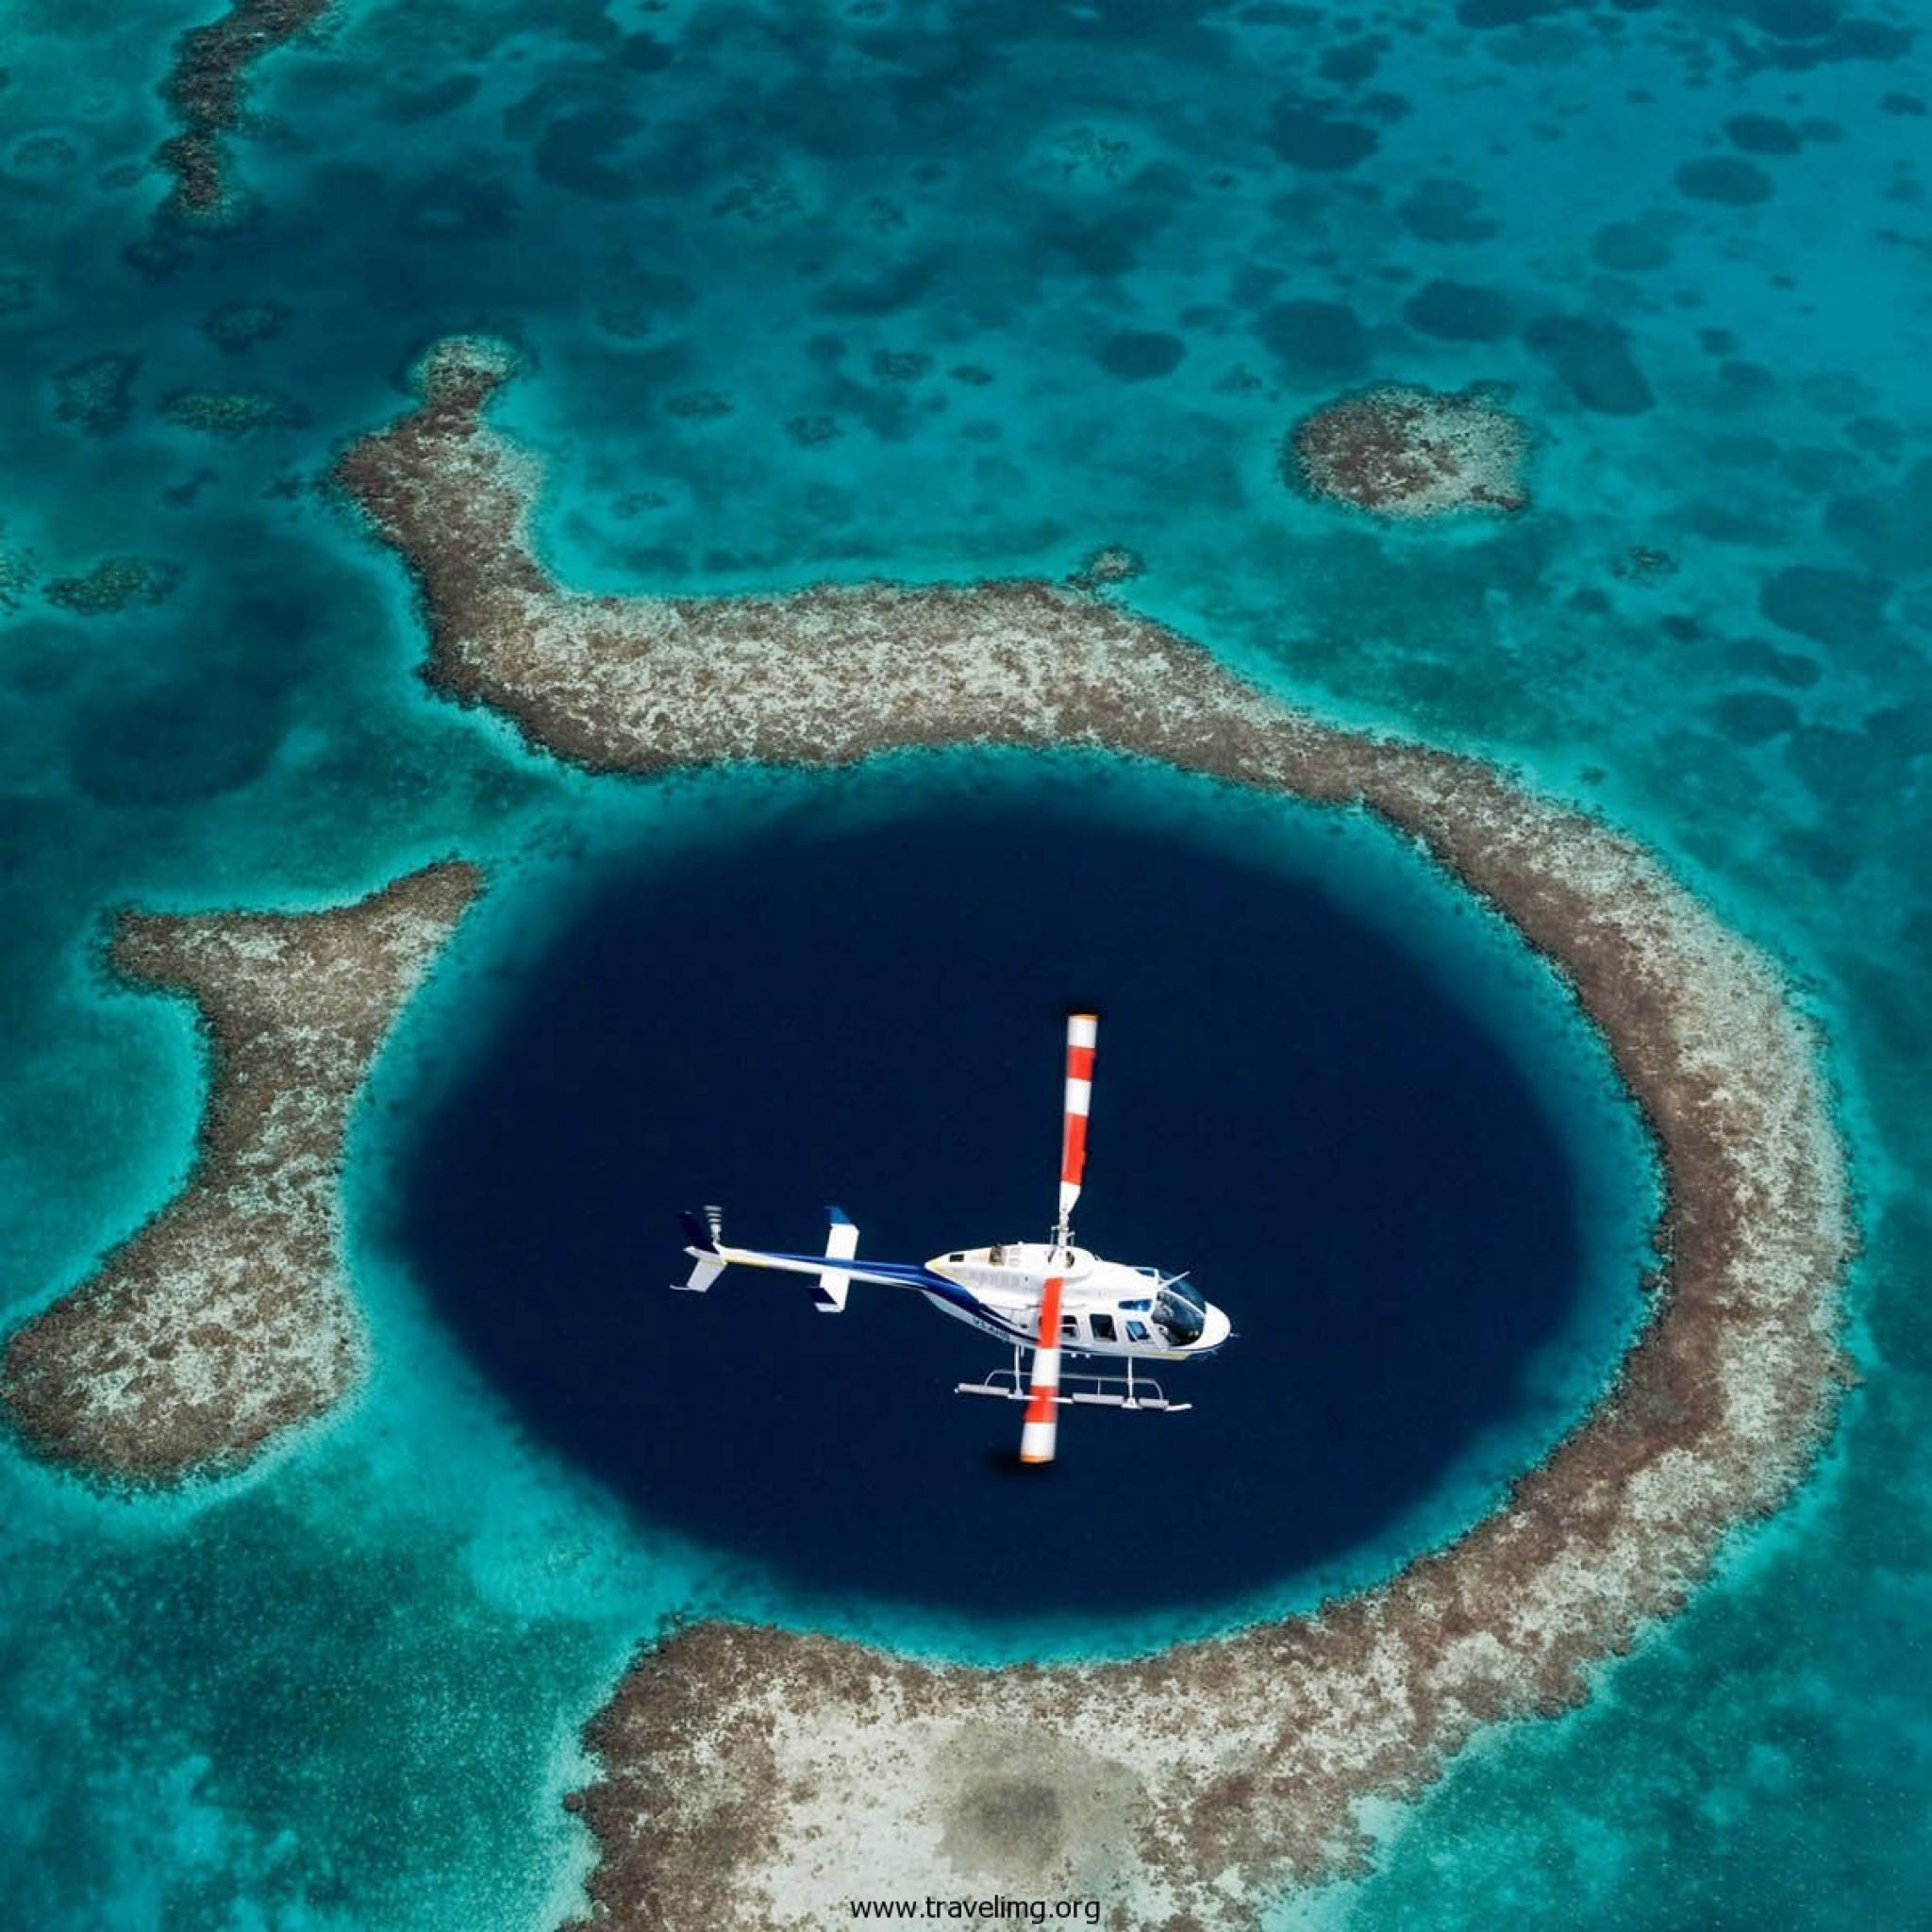 The-Great-Blue-Hole-Belize-